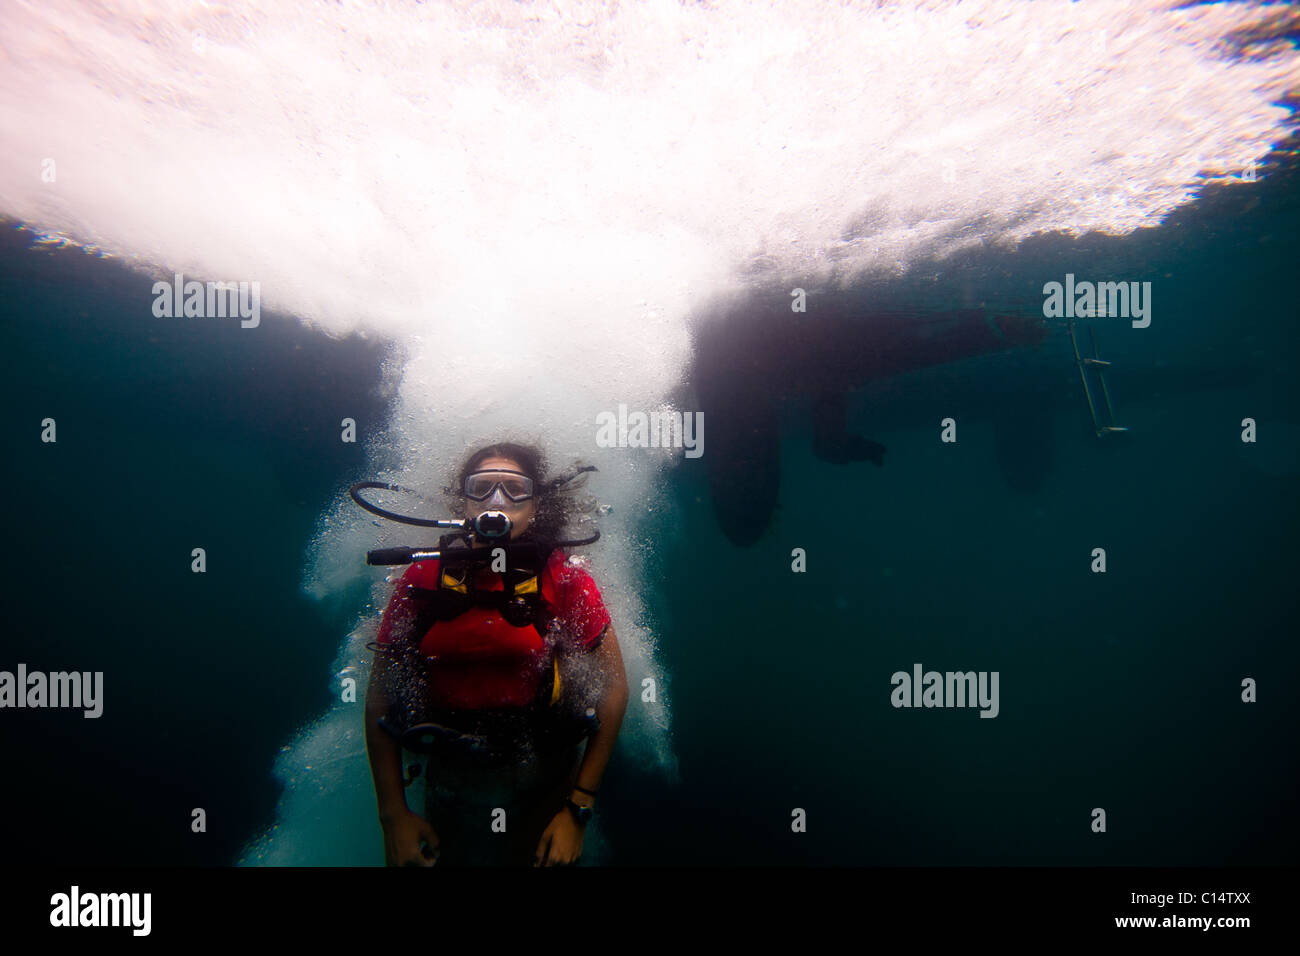 A young Hispanic woman in scuba gear jumps into the ocean. - Stock Image